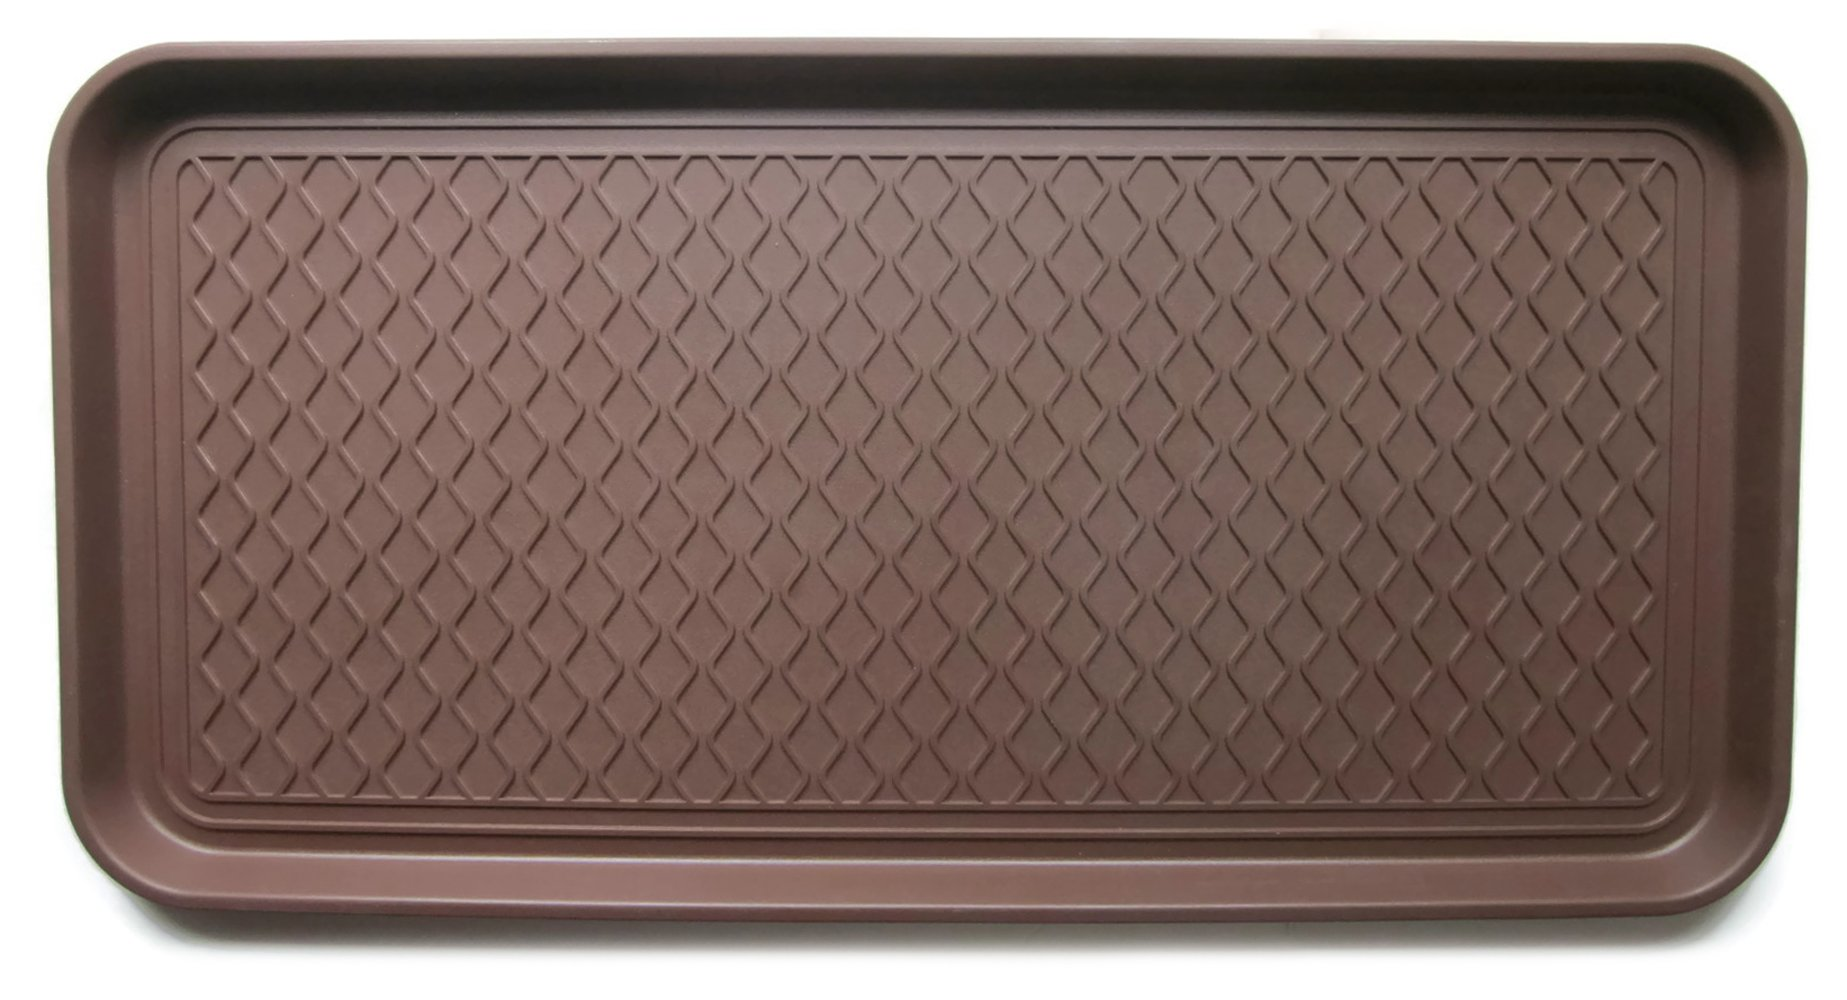 Alex Carseon Multi-Purpose Tray, for Boots, Shoes, Paint, Pets, and More. Anti-Skid Bottom. 30x15x1.2 inches - Brown by Alex Carseon